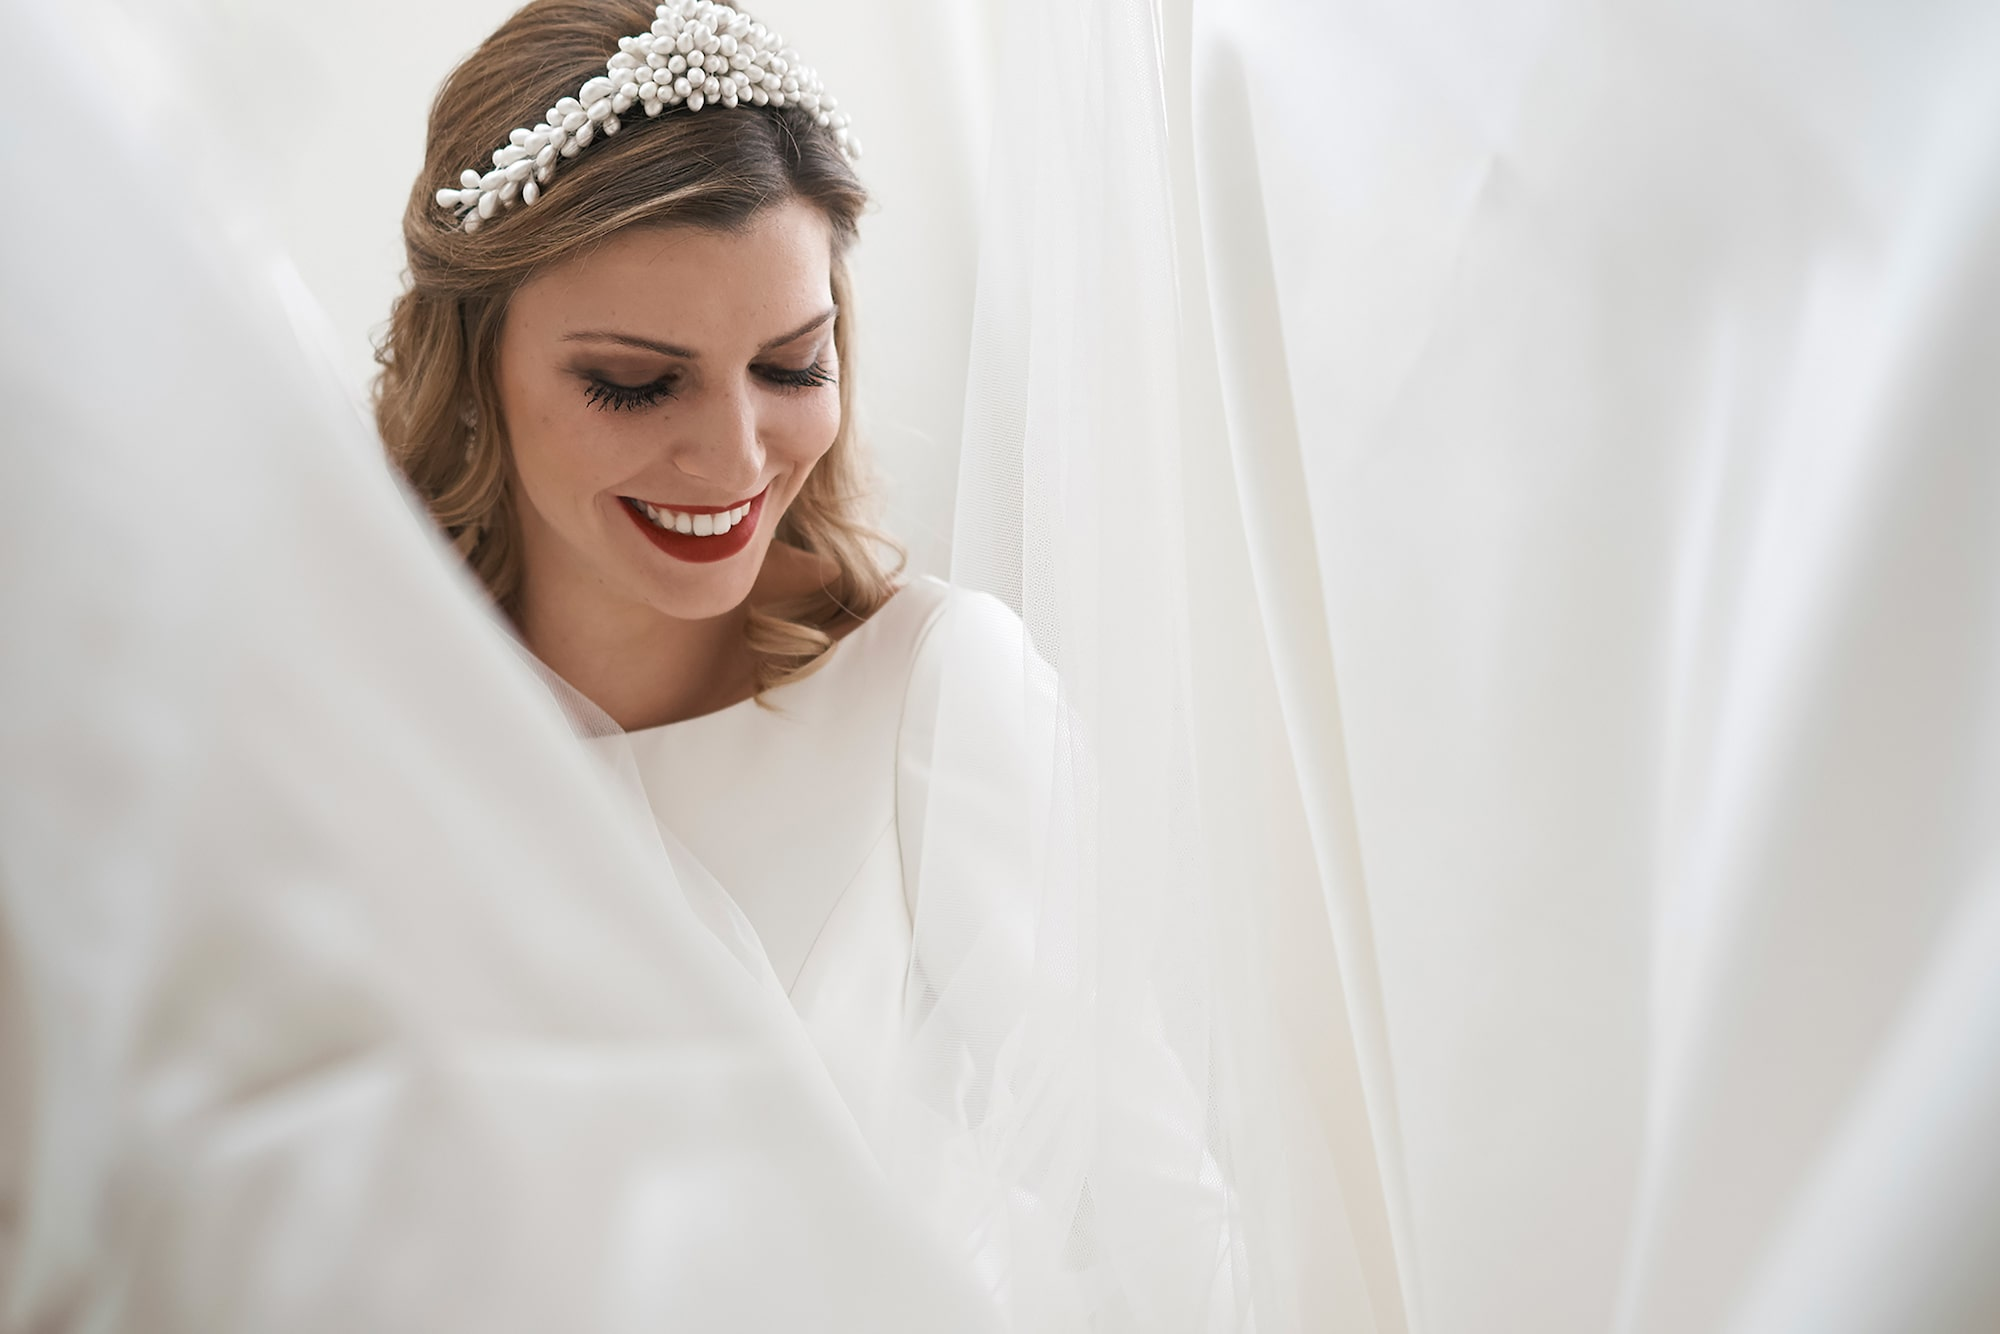 jorge miguel jaime baez sony alpha 7RIII bride enclosed in her veil laughing